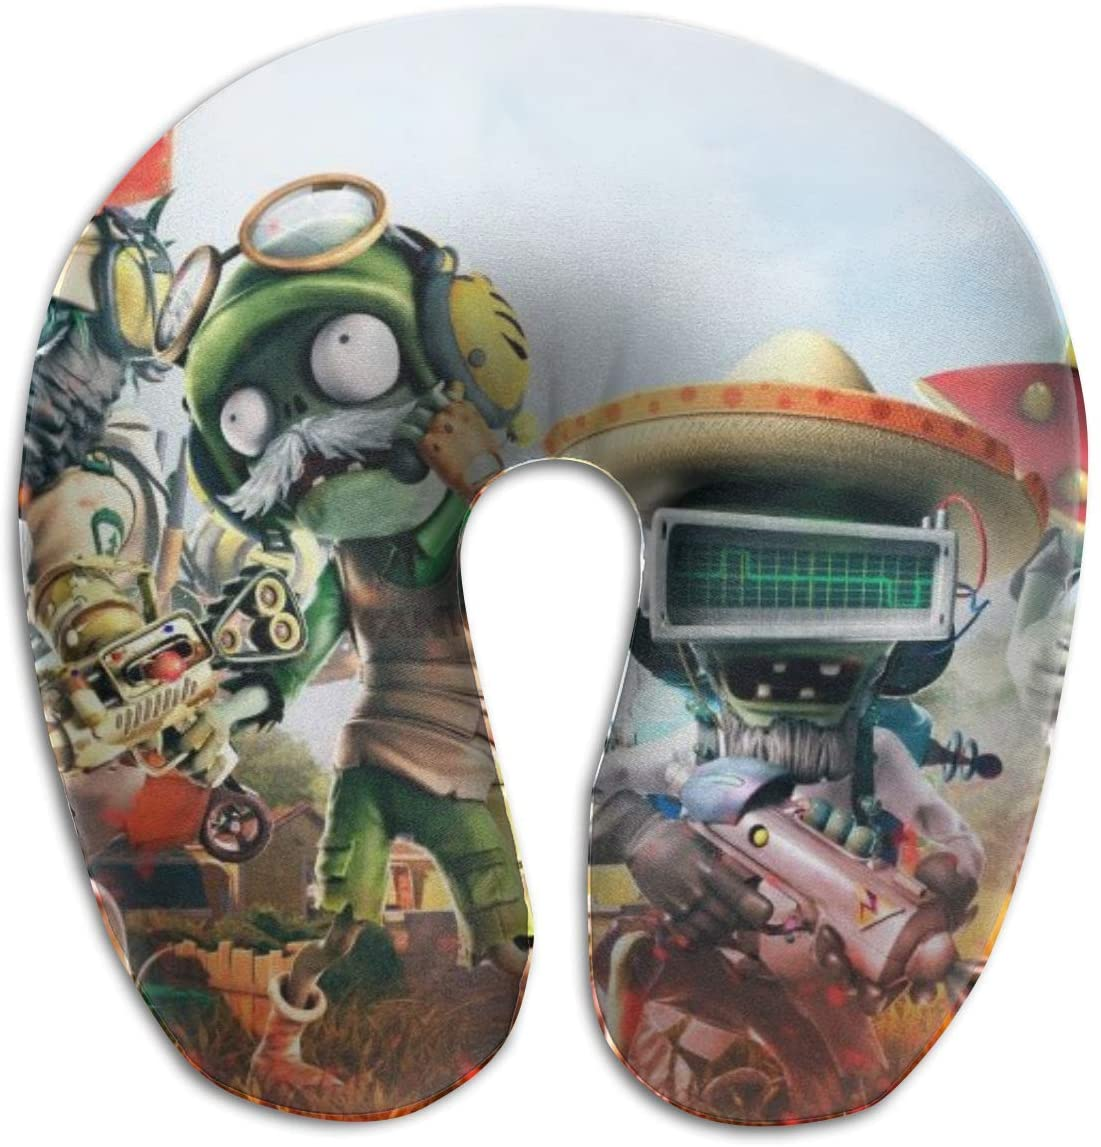 HijingTT Plants Vs Zombies U Shaped Pillows Portable Travel Neck Pillow-Breathable Comfortable Soft Memory Foam Travel Pillow for Head and Neck Support